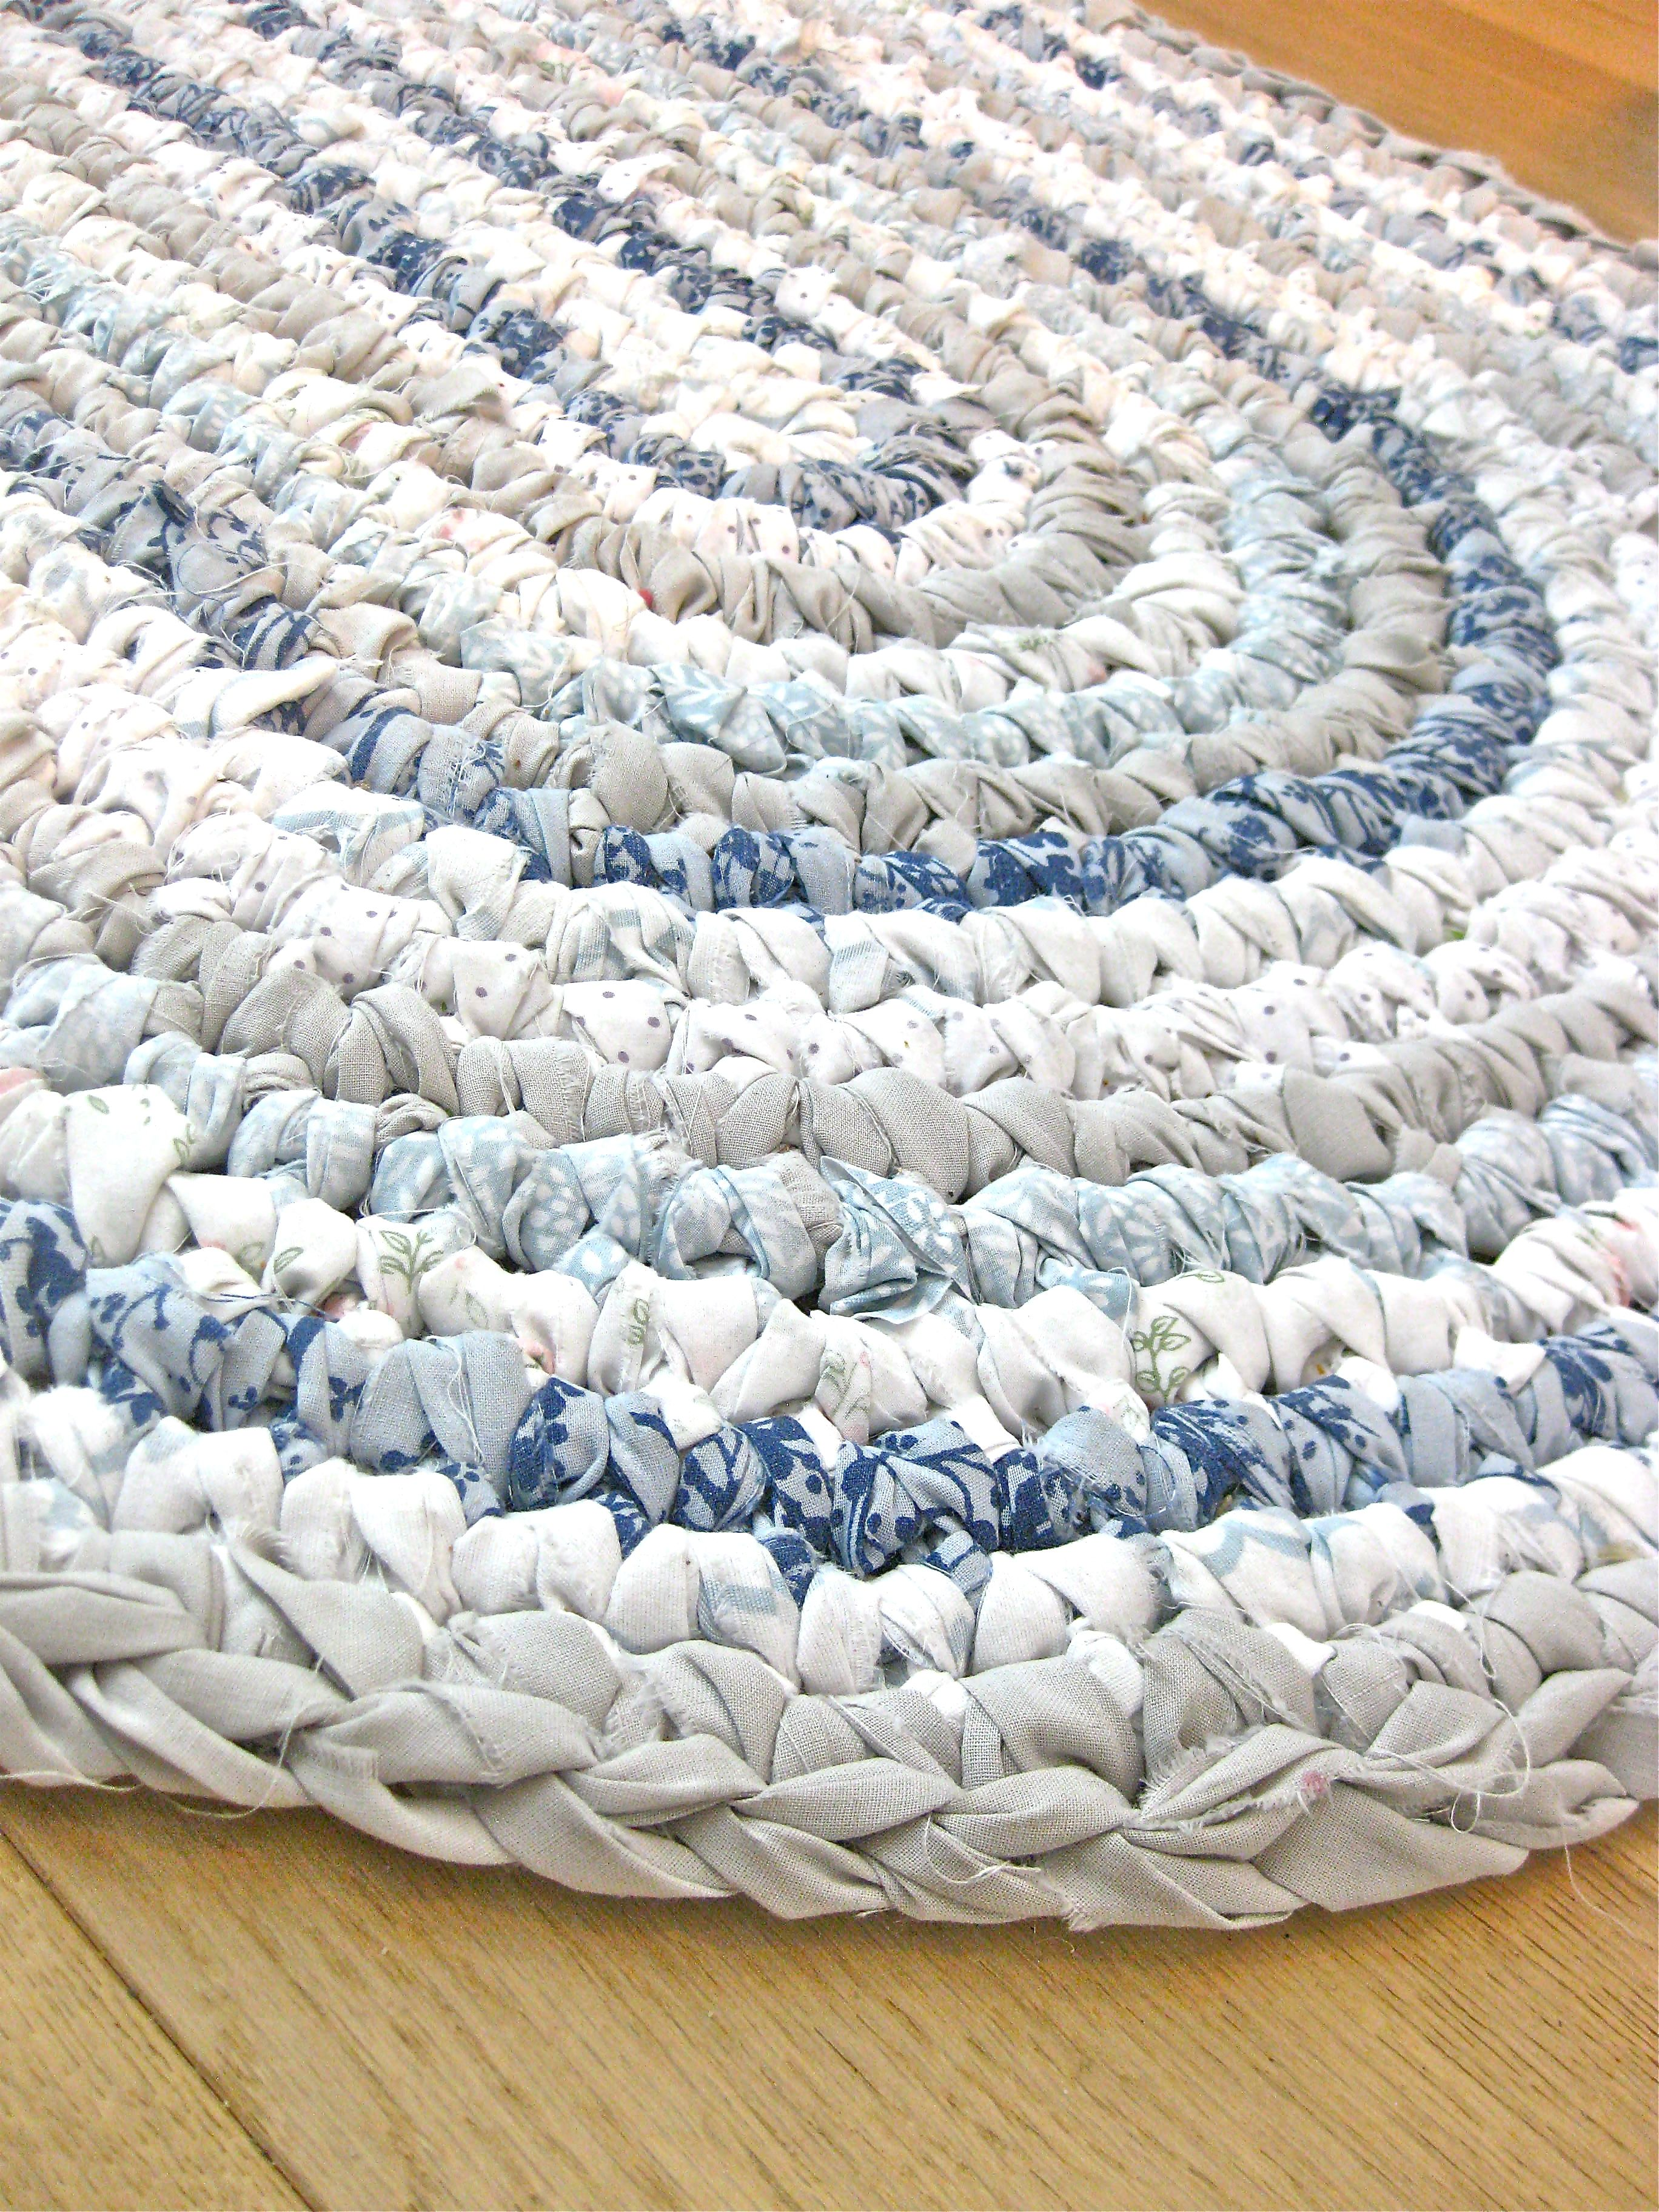 Unique Rag Rugs Design For Your Family Room: Contemporary White Rag ...